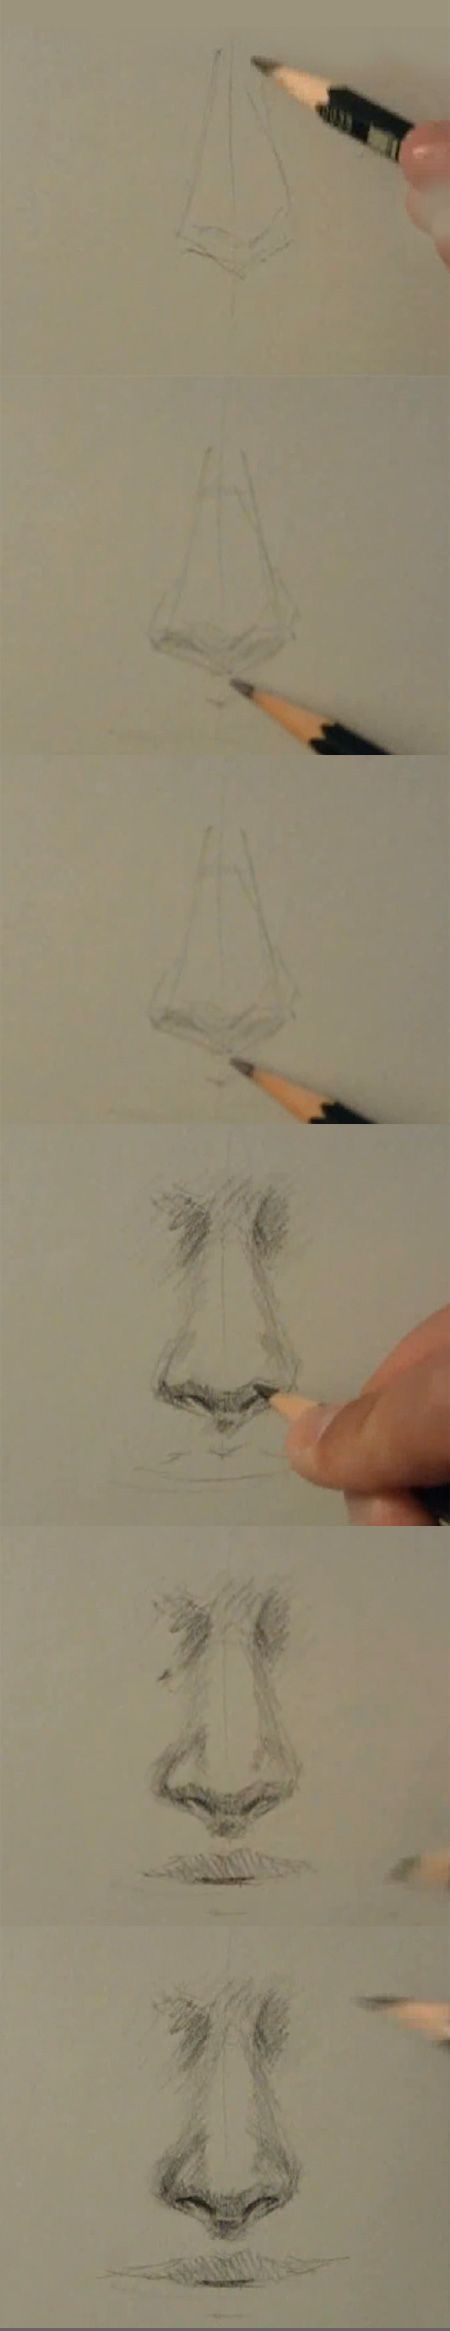 How to draw and paint tutorials video and step by step: How to draw a nose